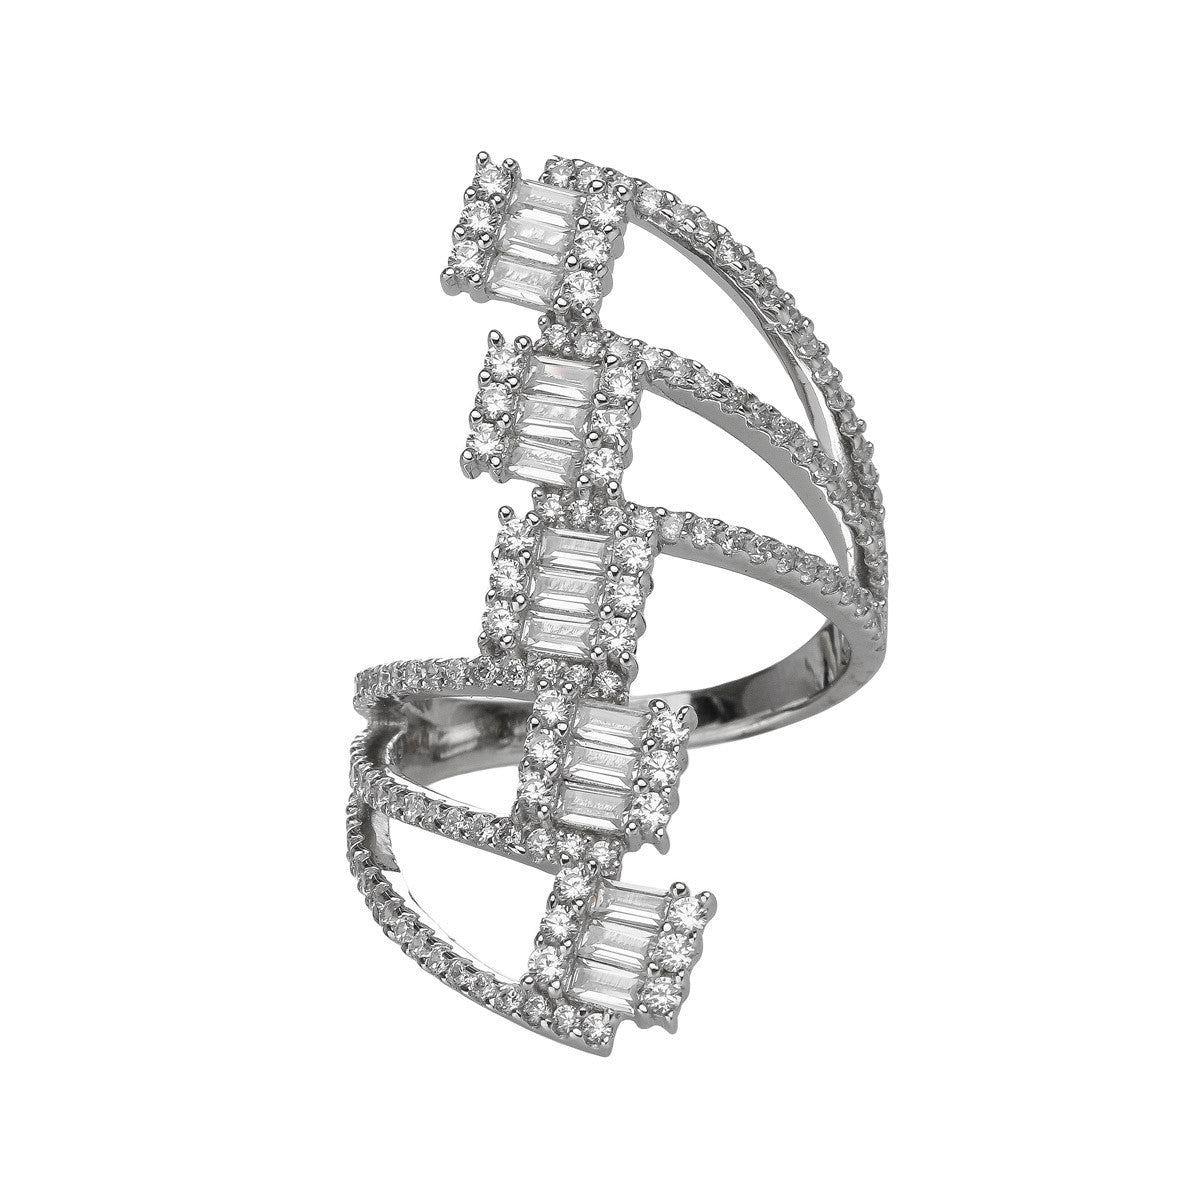 Julia Ring - The Firestone Collection - Fashion Jewelry & Accessories